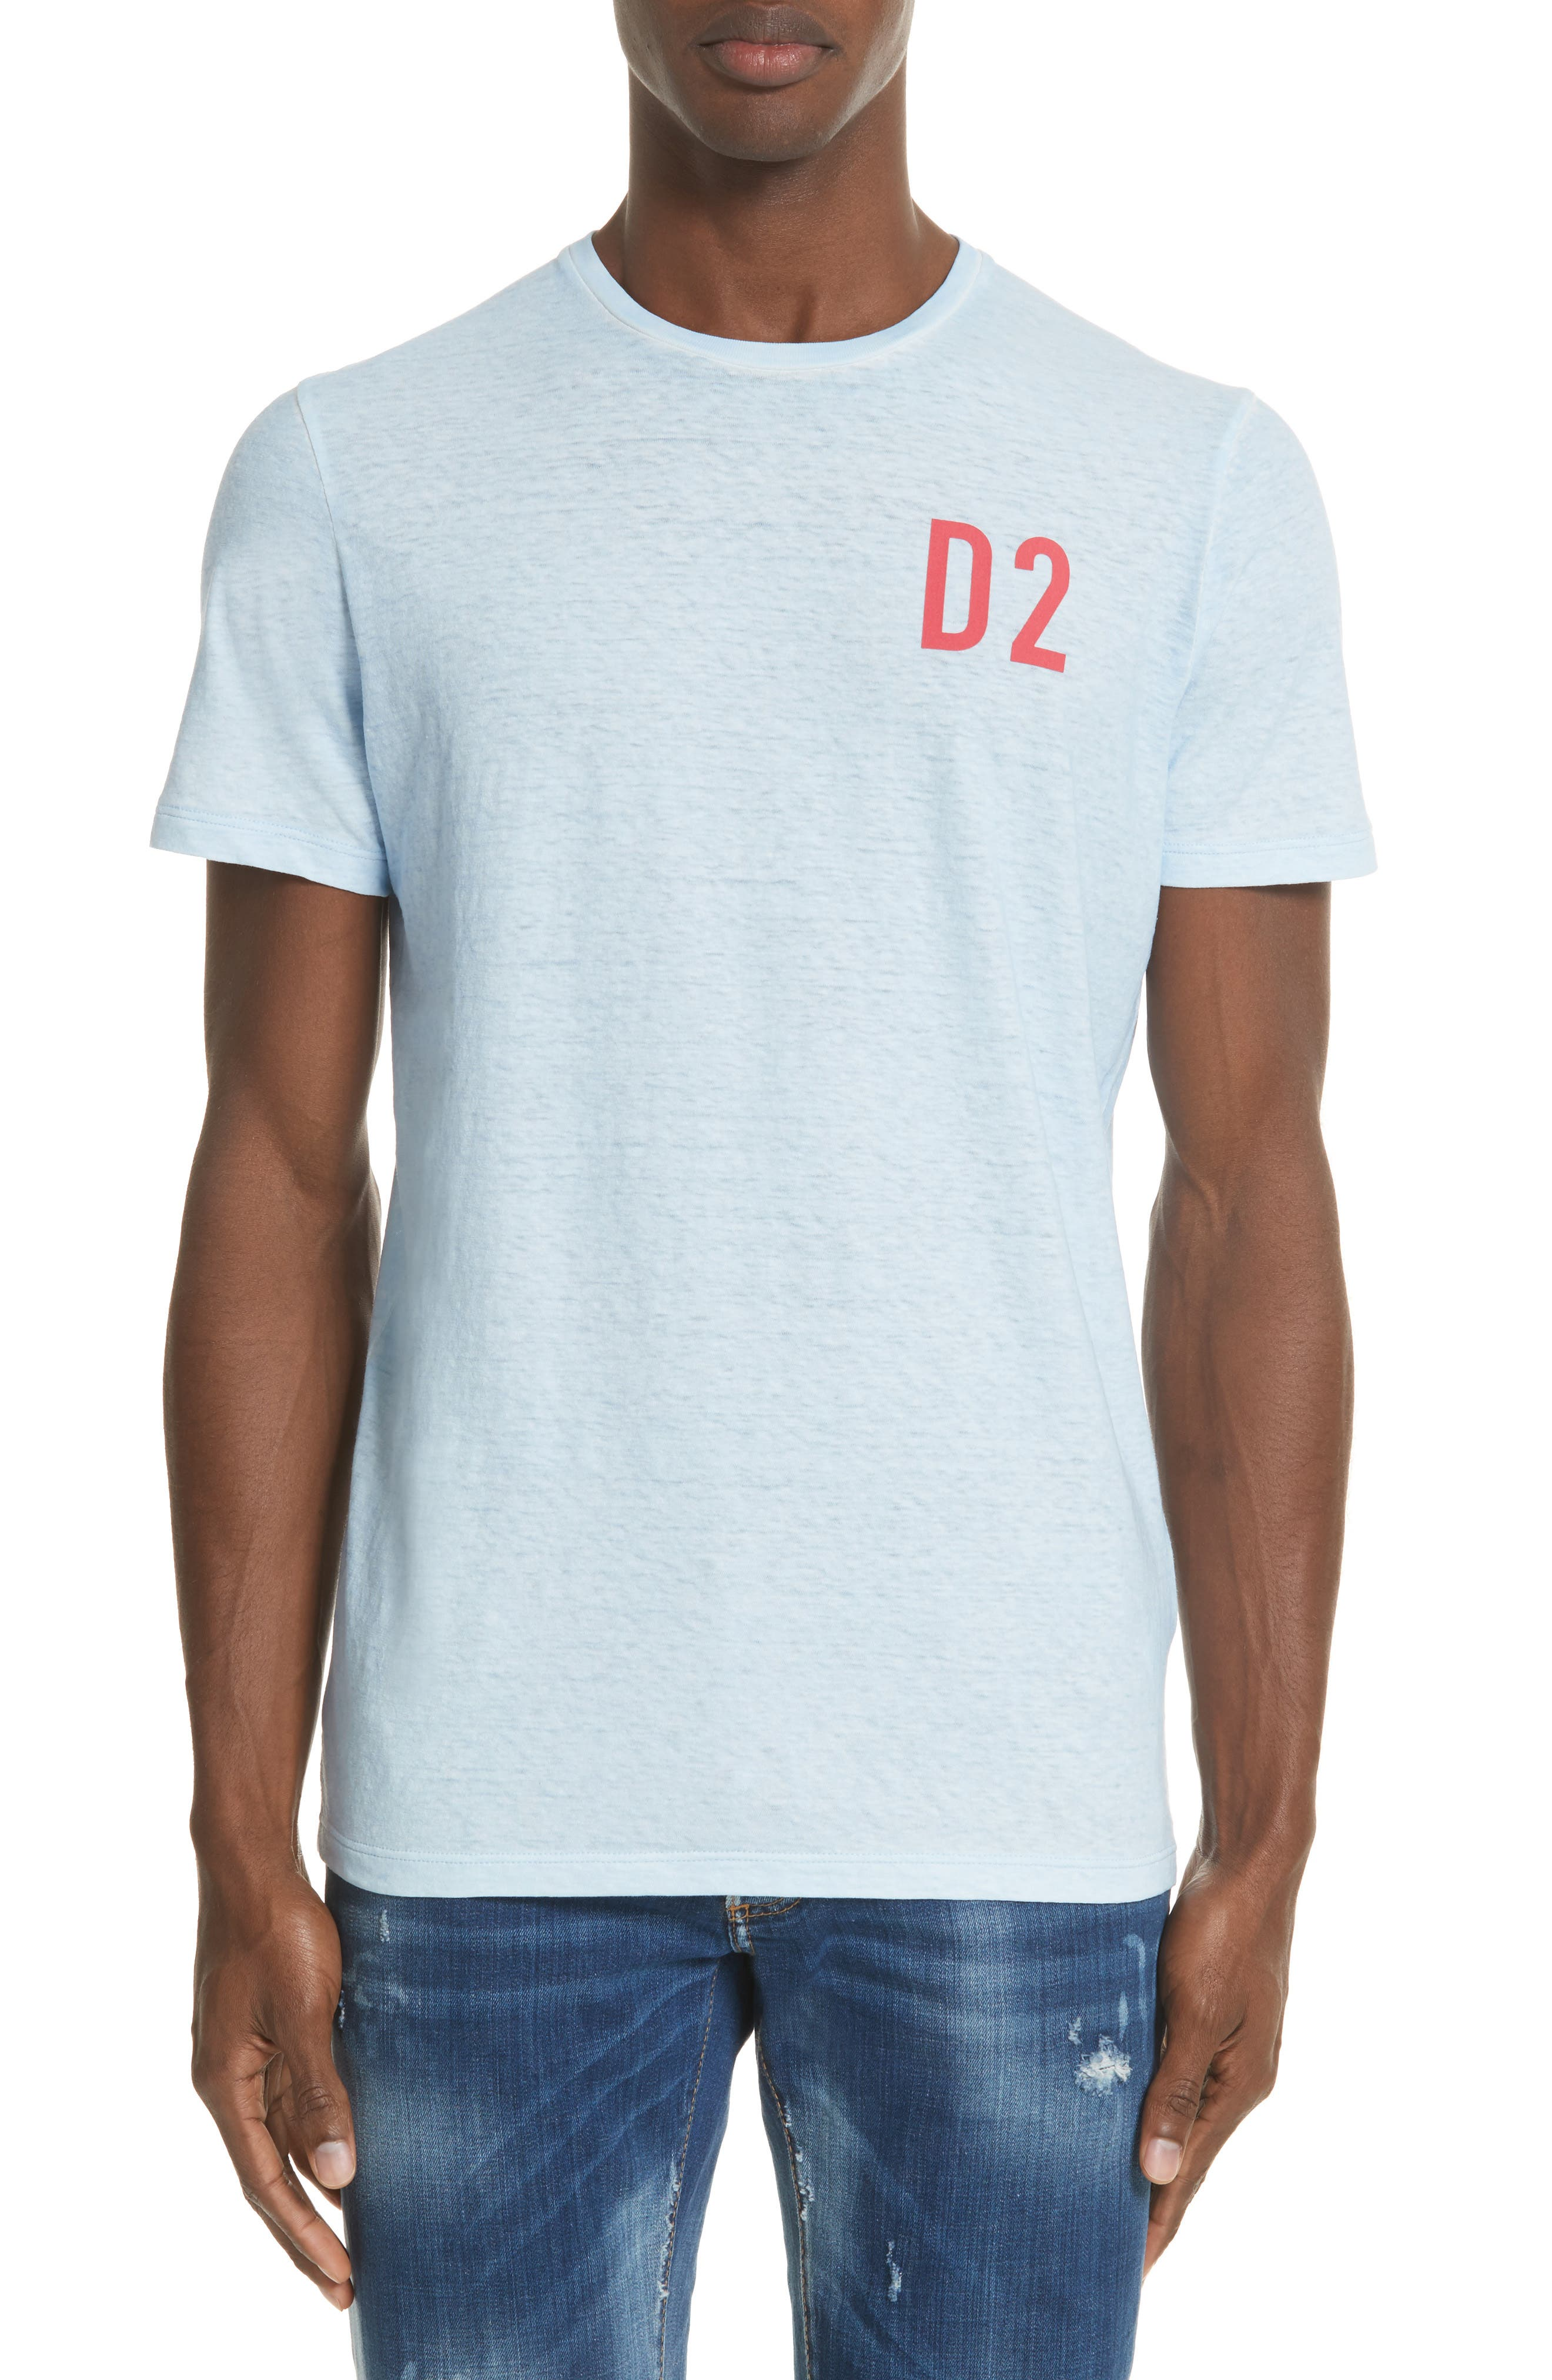 Alternate Image 1 Selected - Dsquared2 D2 Logo Graphic T-Shirt